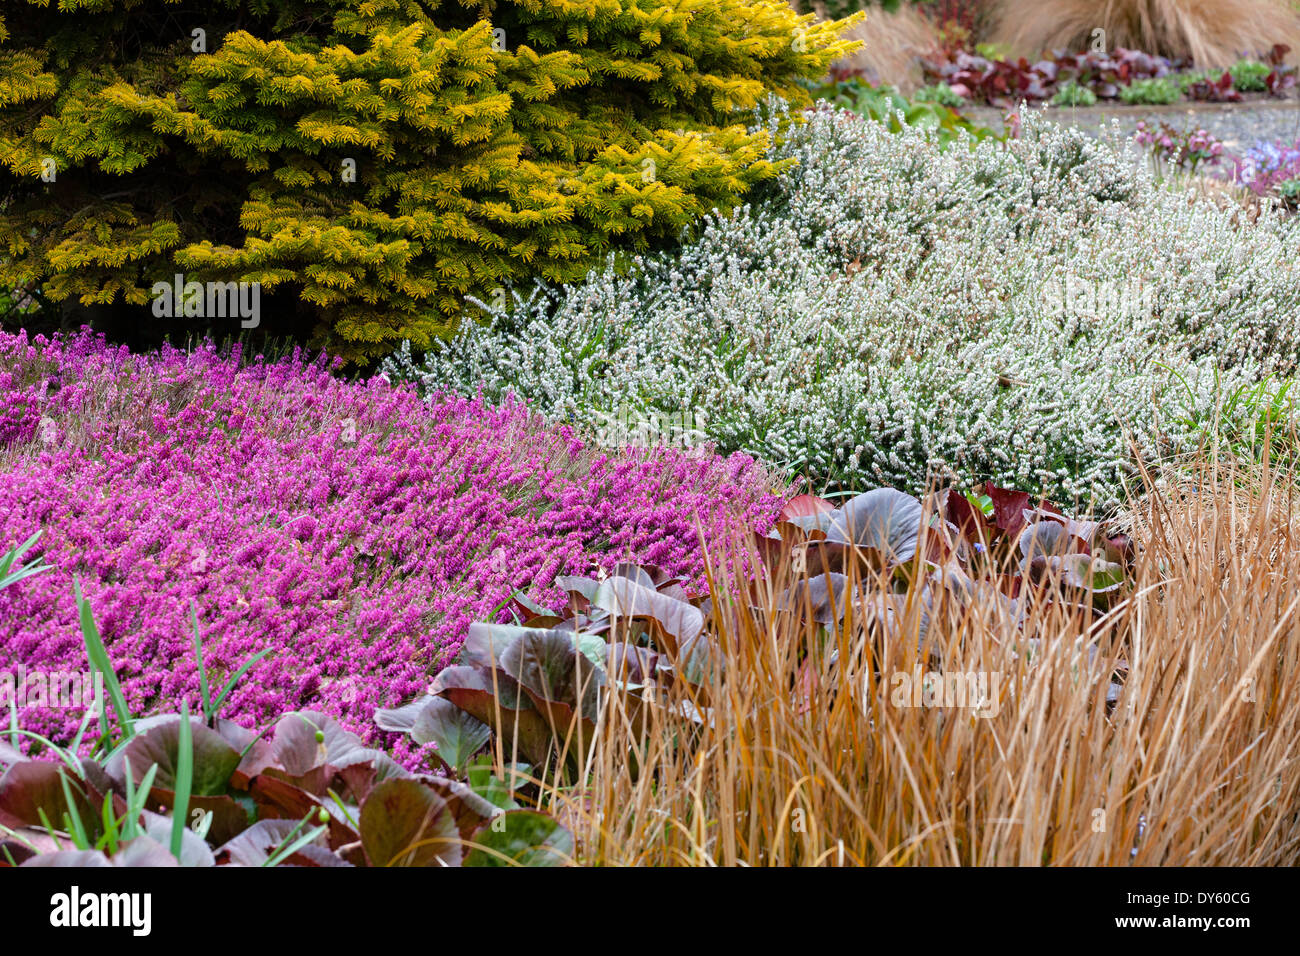 Winter plant association with conifer and heathers. April. - Stock Image